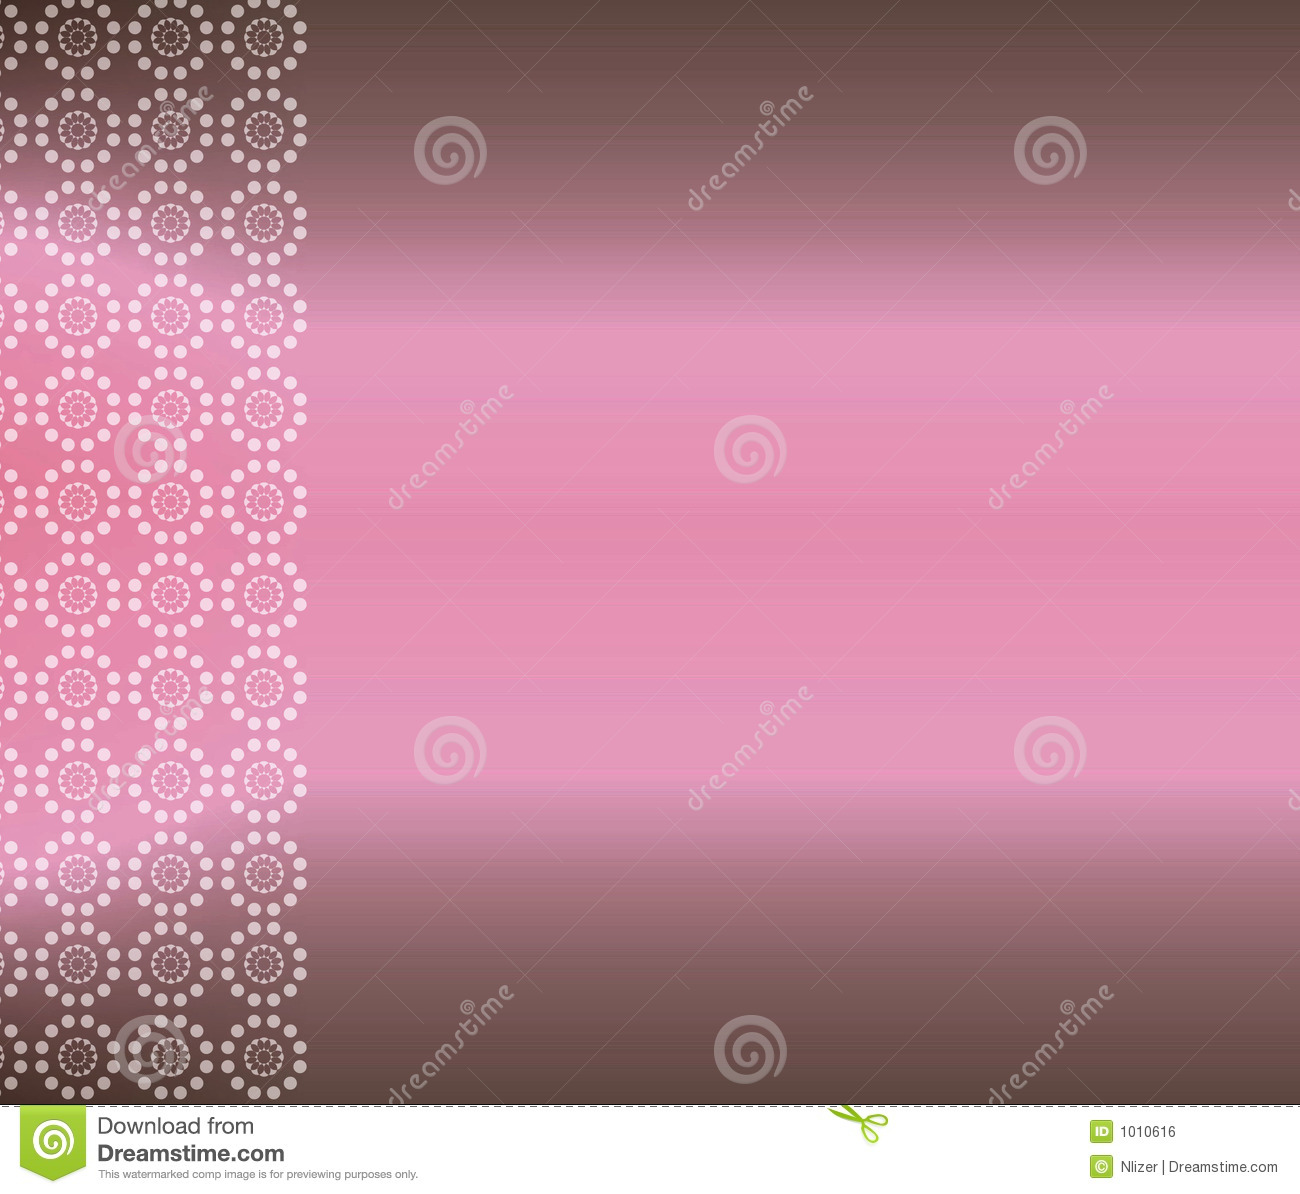 De Stock Royalty Free  Fundo Cor De Rosa Do Papel De Parede De Brown